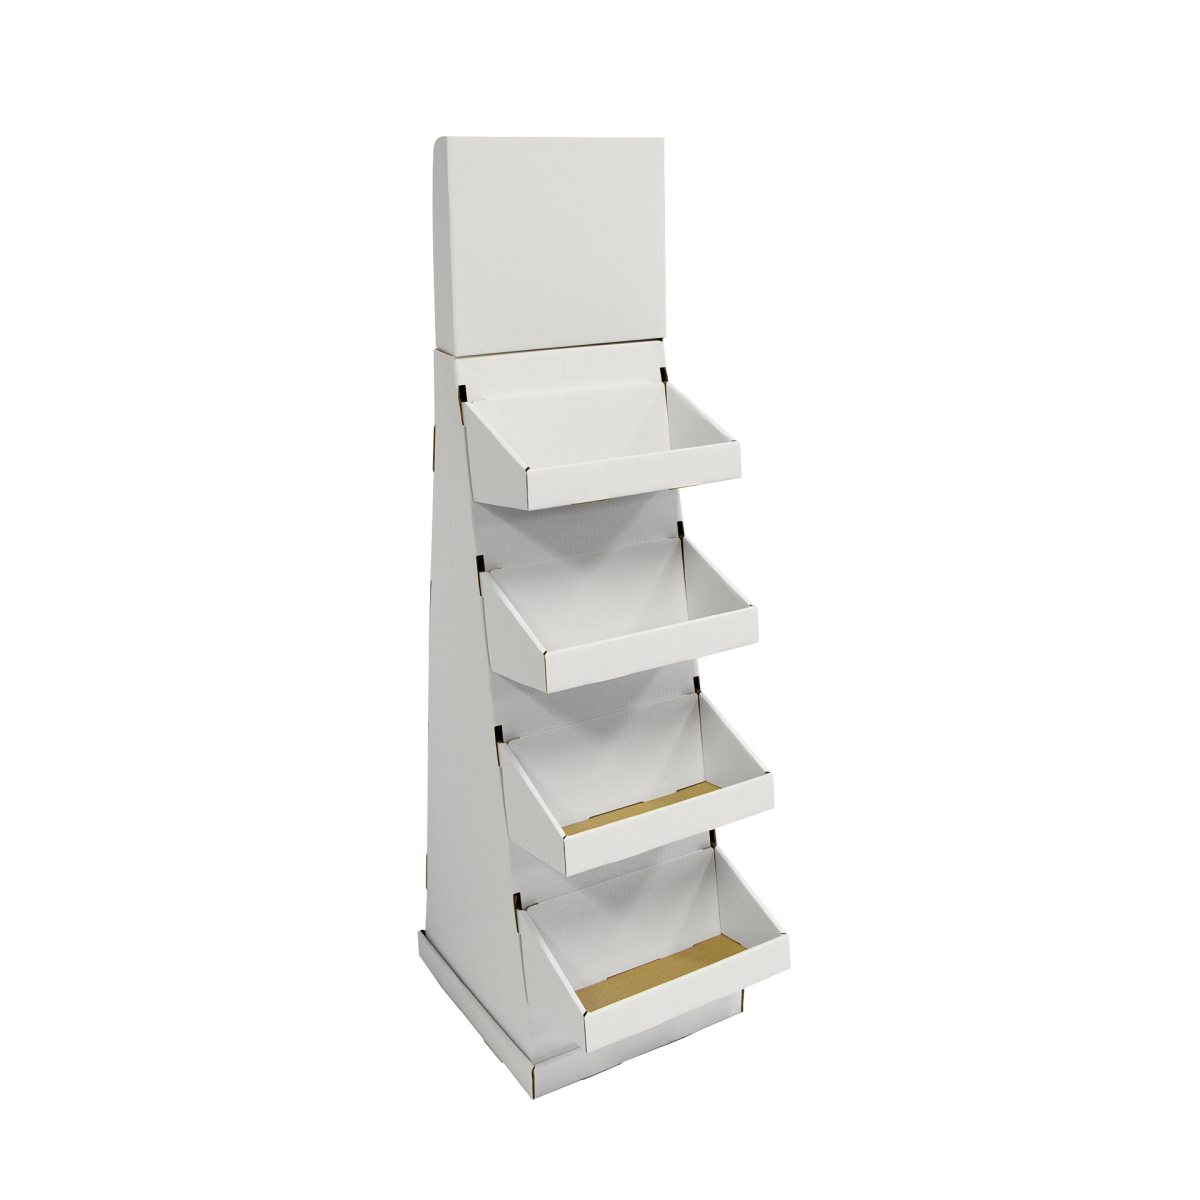 Cardboard floor display with header and shelves - white